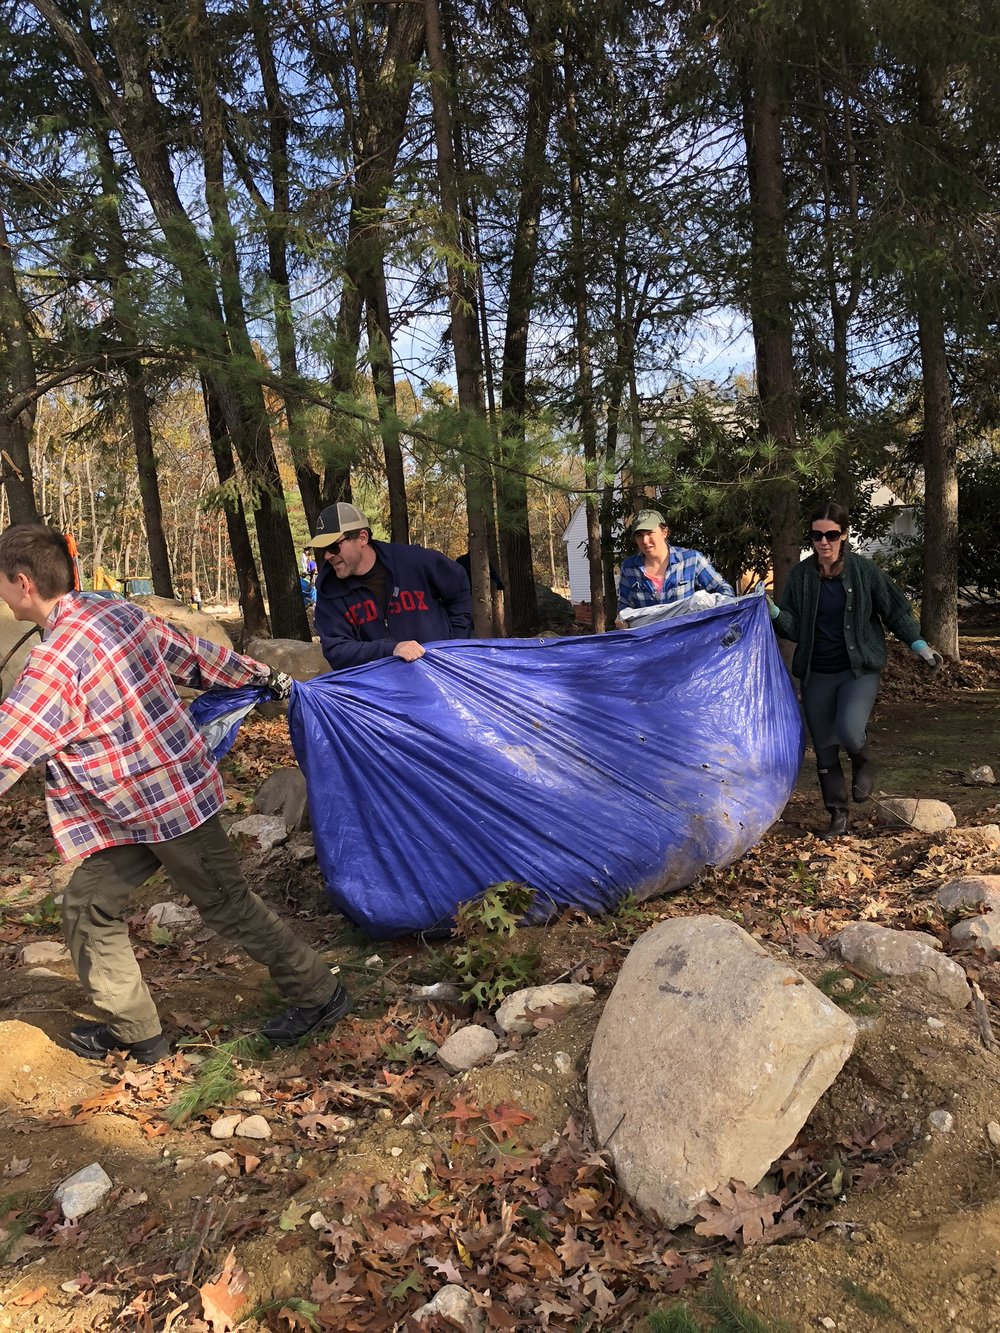 And here adults pull debris from the woods to dumpsters where children wait to tamp down the branches. We never thought we could accomplish so much in one day and still have so much fun!